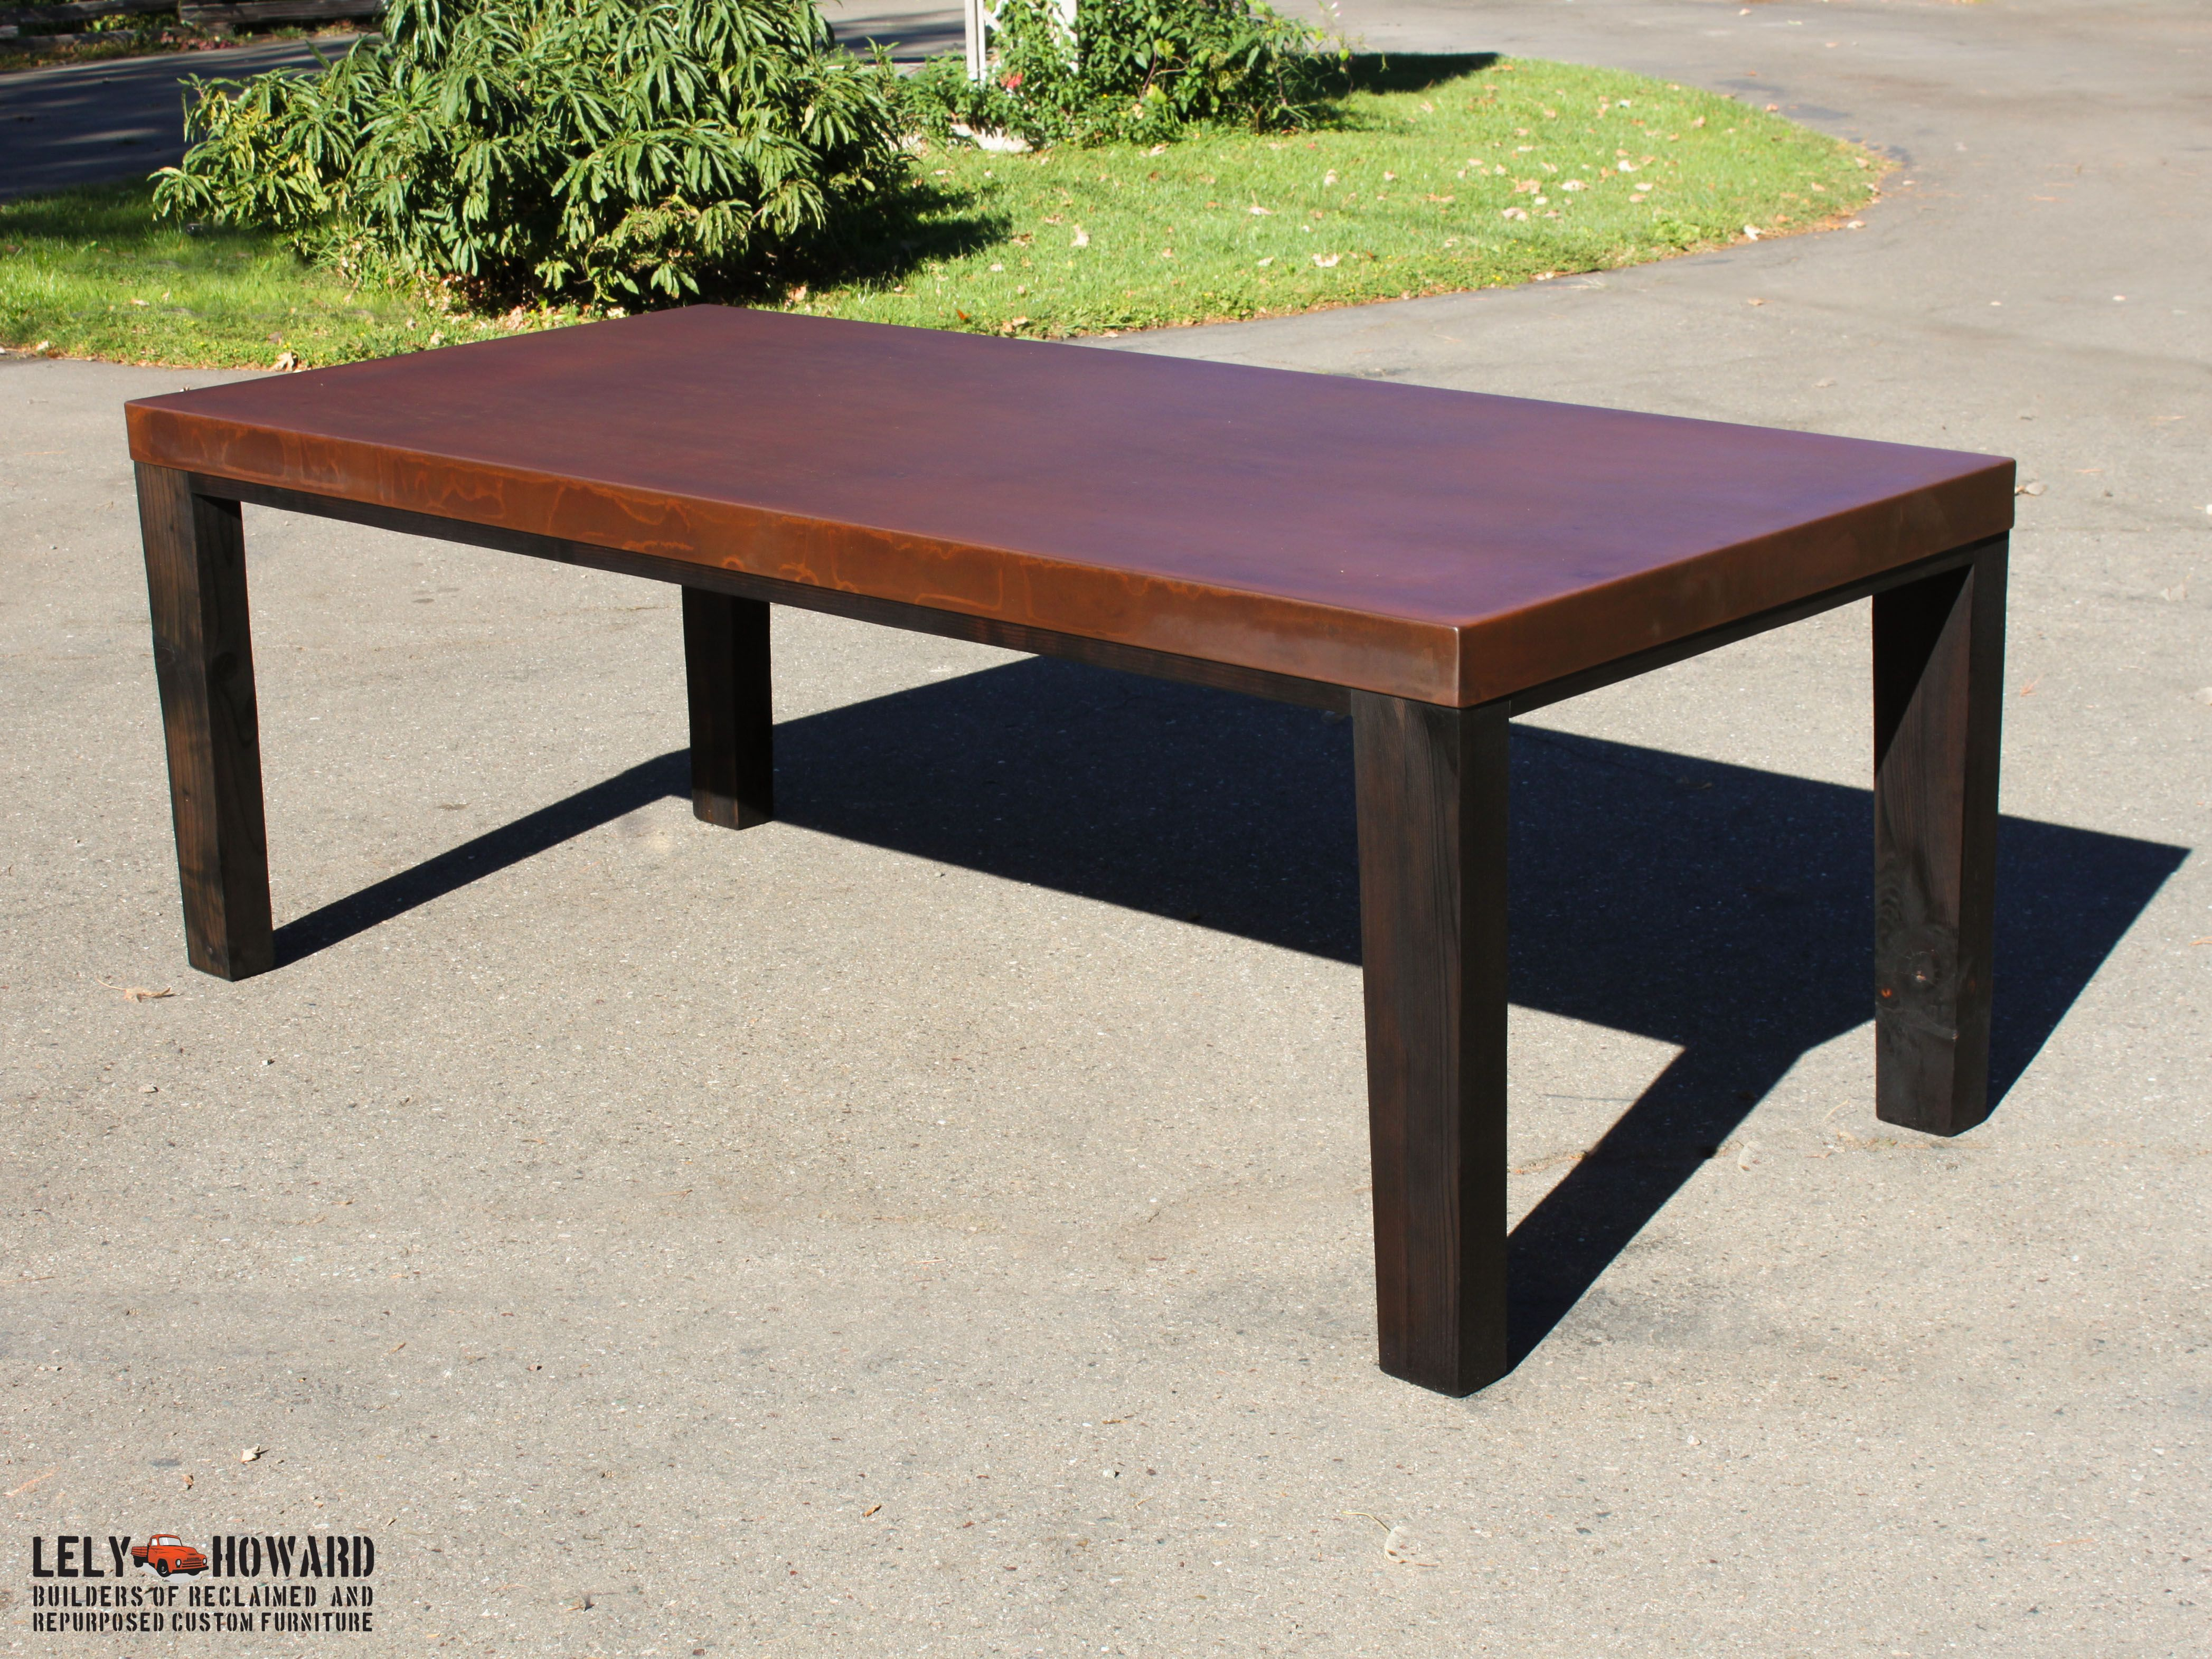 This Beautiful Outdoor Dining Table Was Built Using Corten Sheet